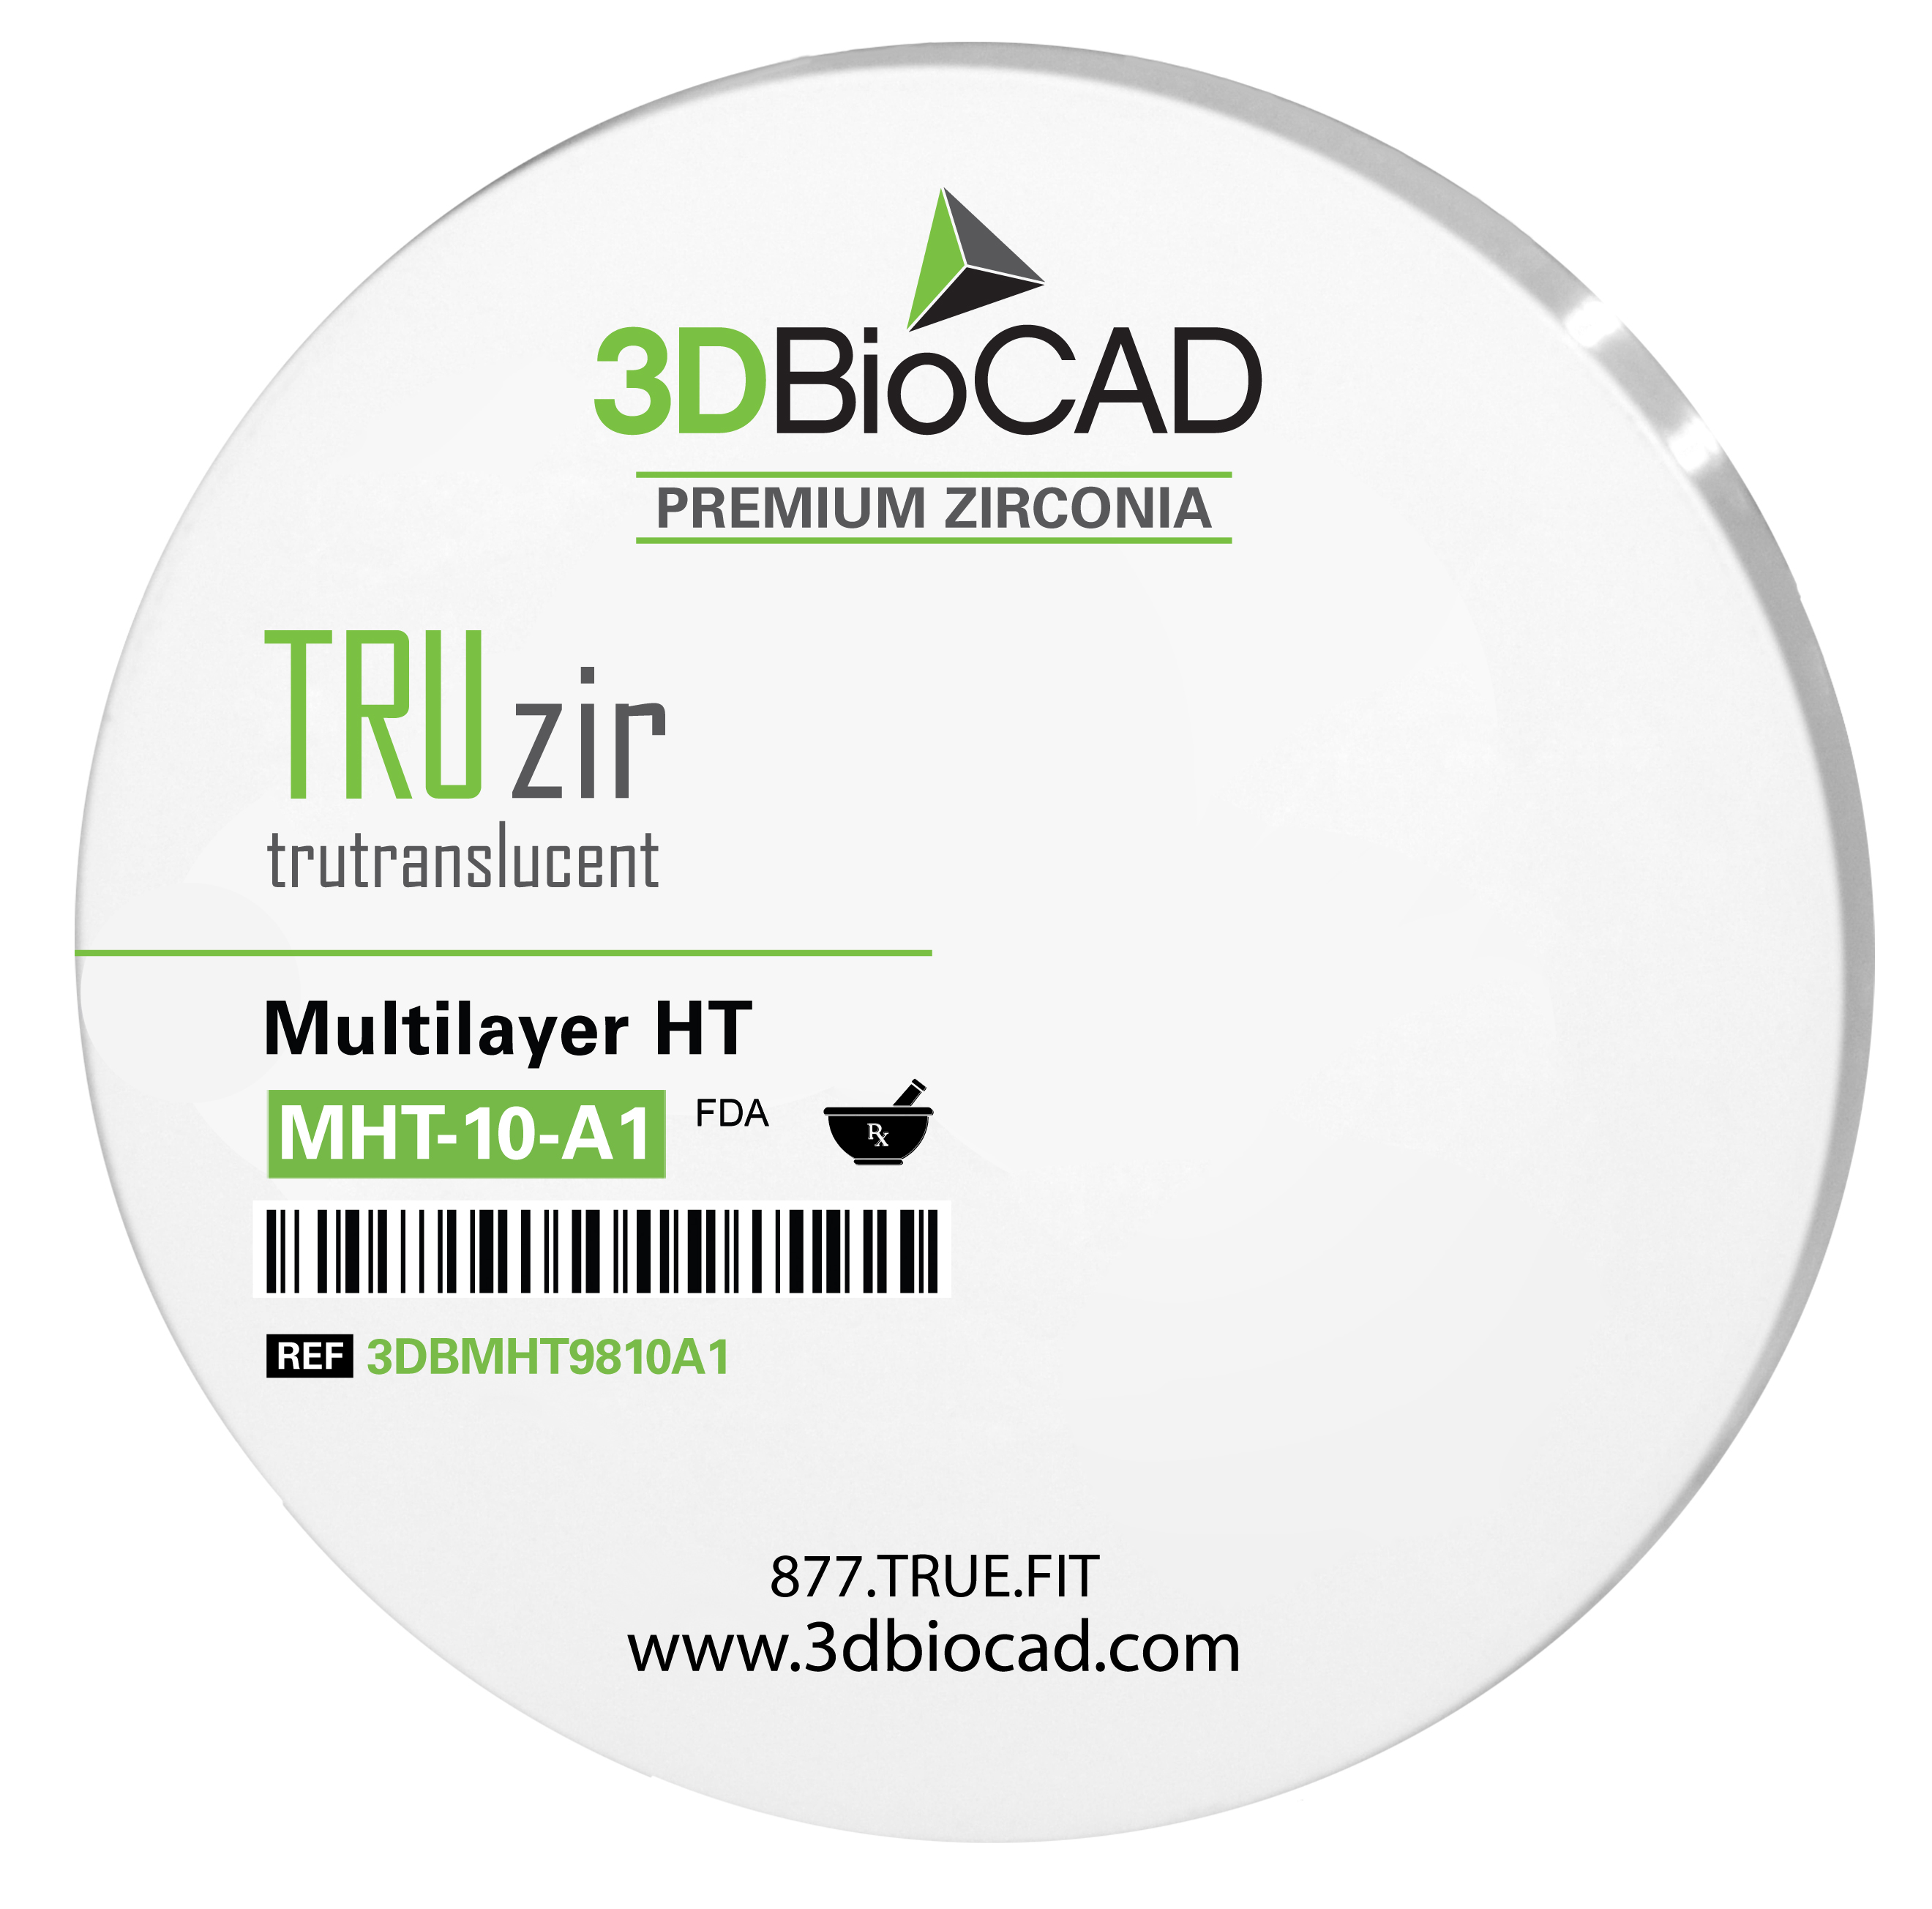 http://3d.3dbiocadedu.com/wp-content/uploads/sites/10/2017/07/truzir_multilayer.jpg